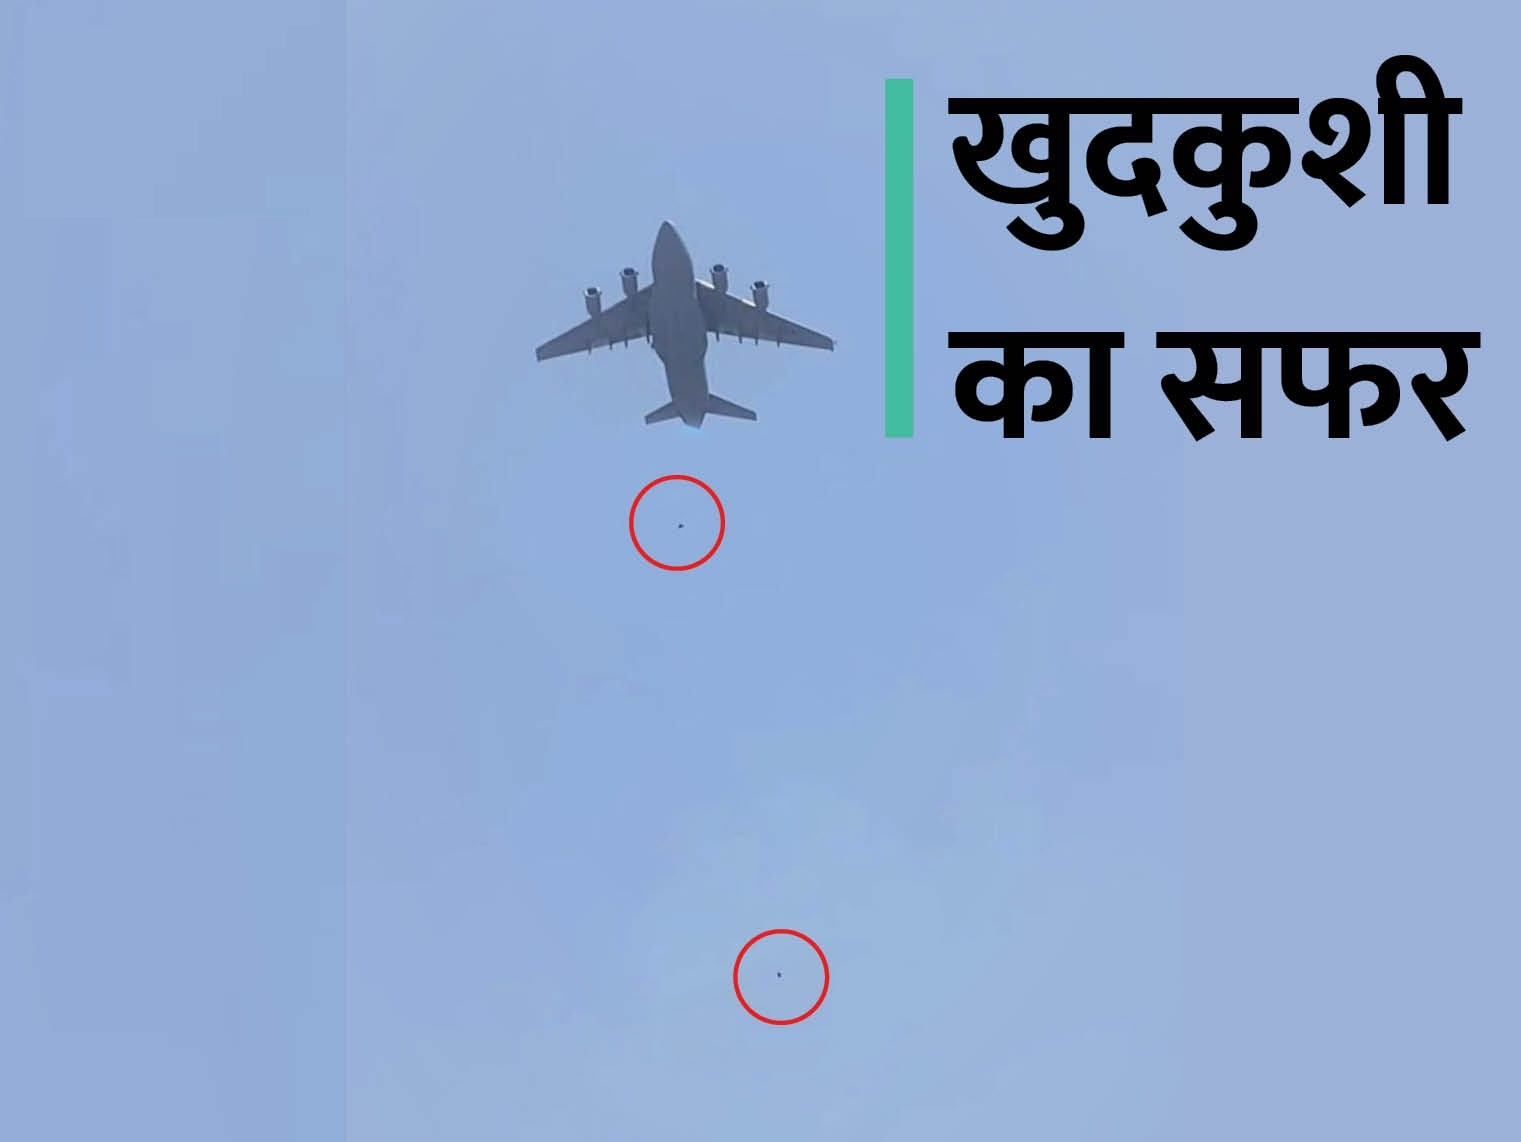 Kabul airport video: Three people fell from the flying plane of the US Air Force, sat on the tires to leave the country